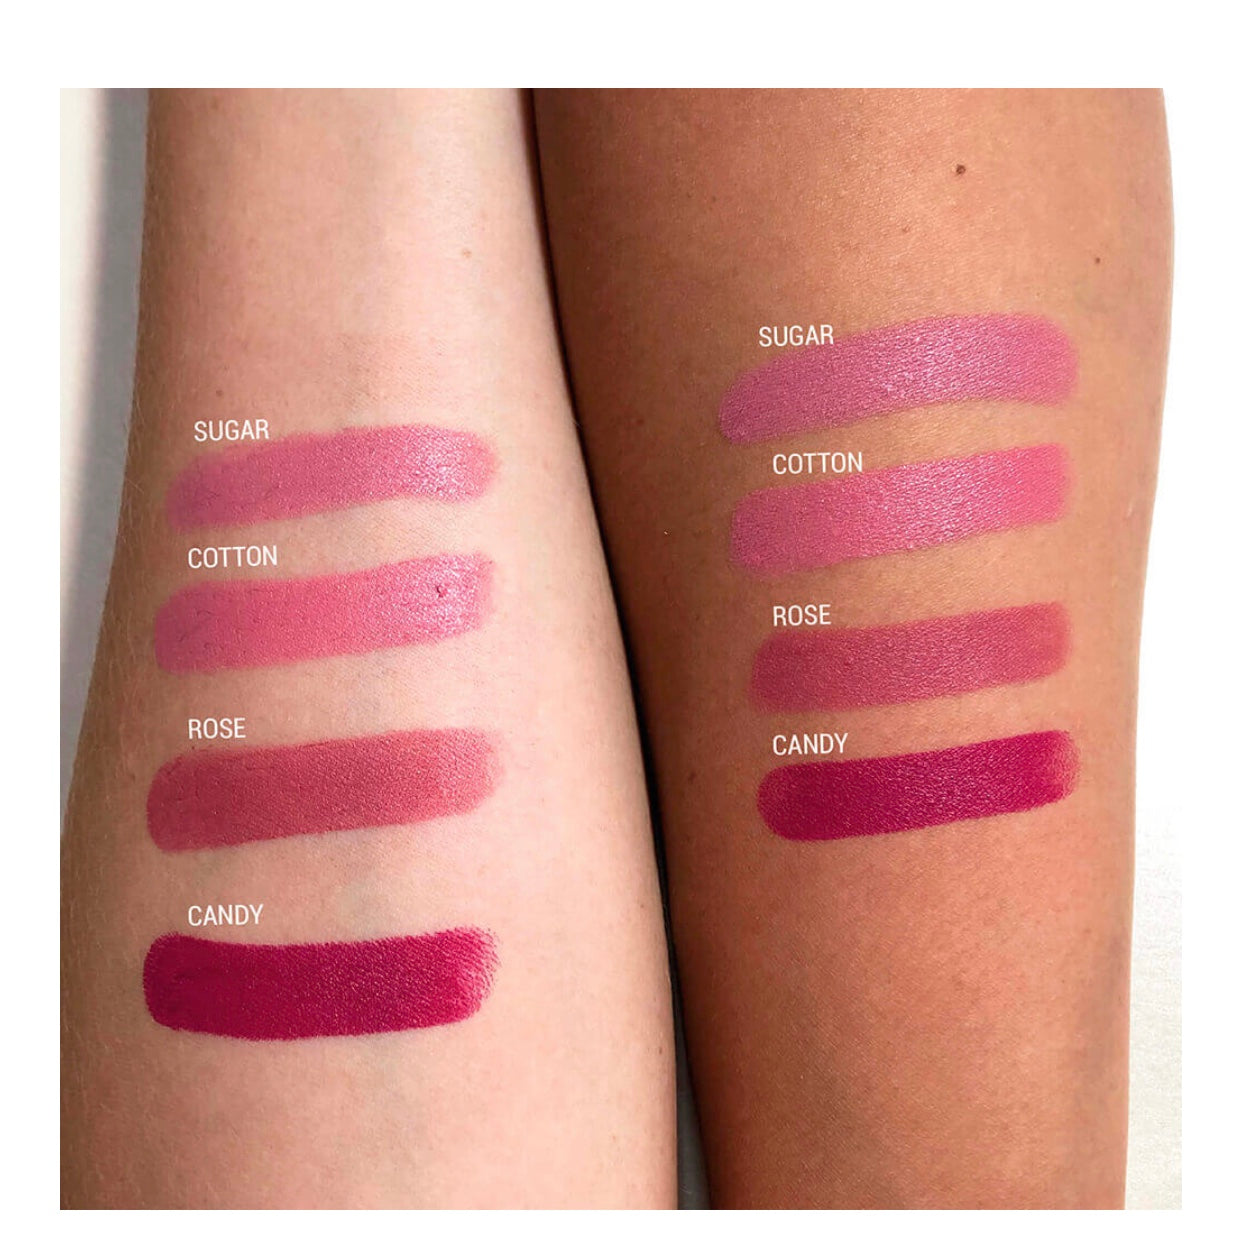 Labial Matte Sugar